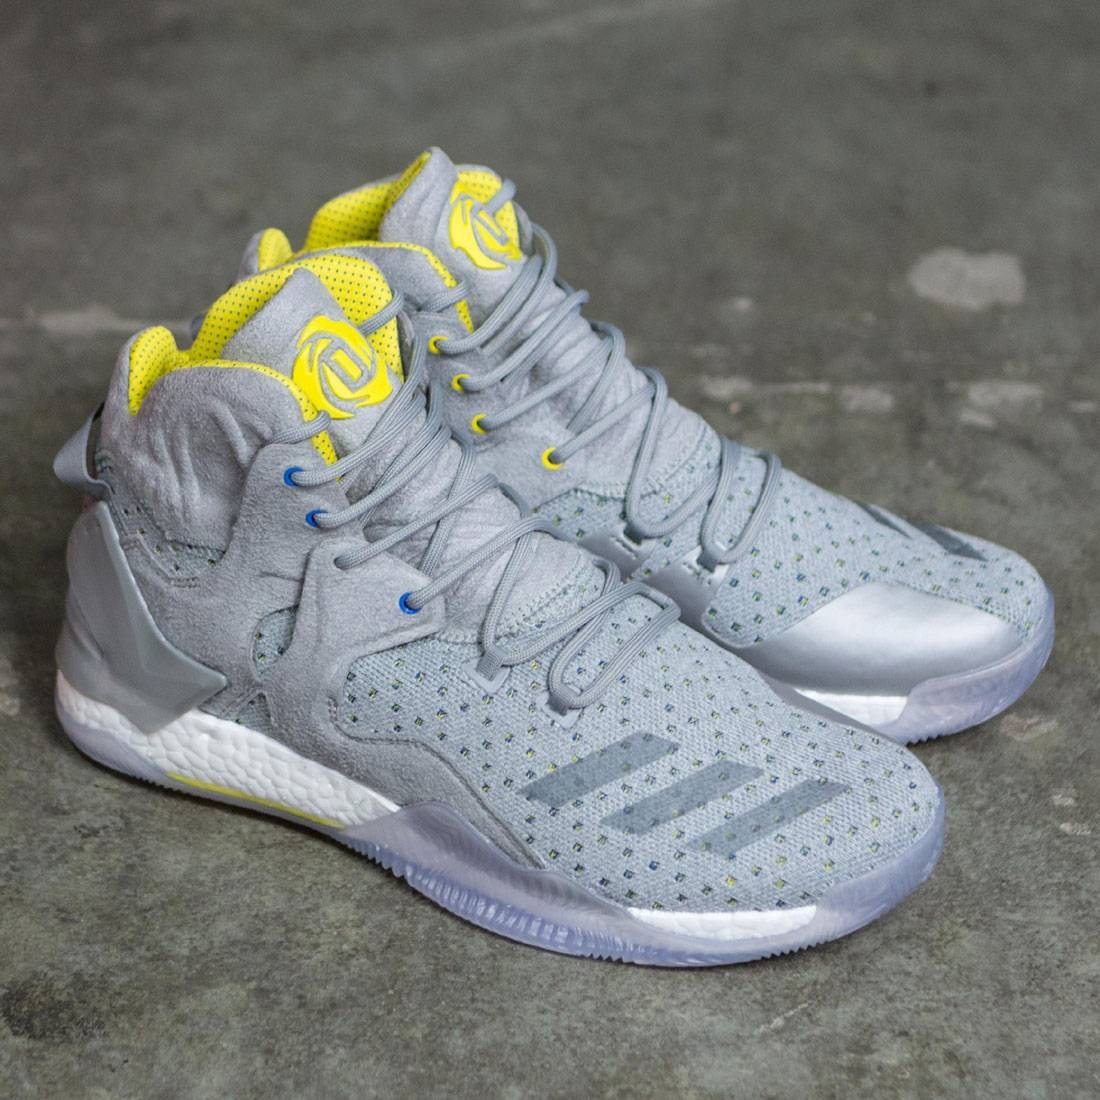 db157561d9a Adidas Consortium X SNS Men D Rose 7 Primeknit (grey   yellow)